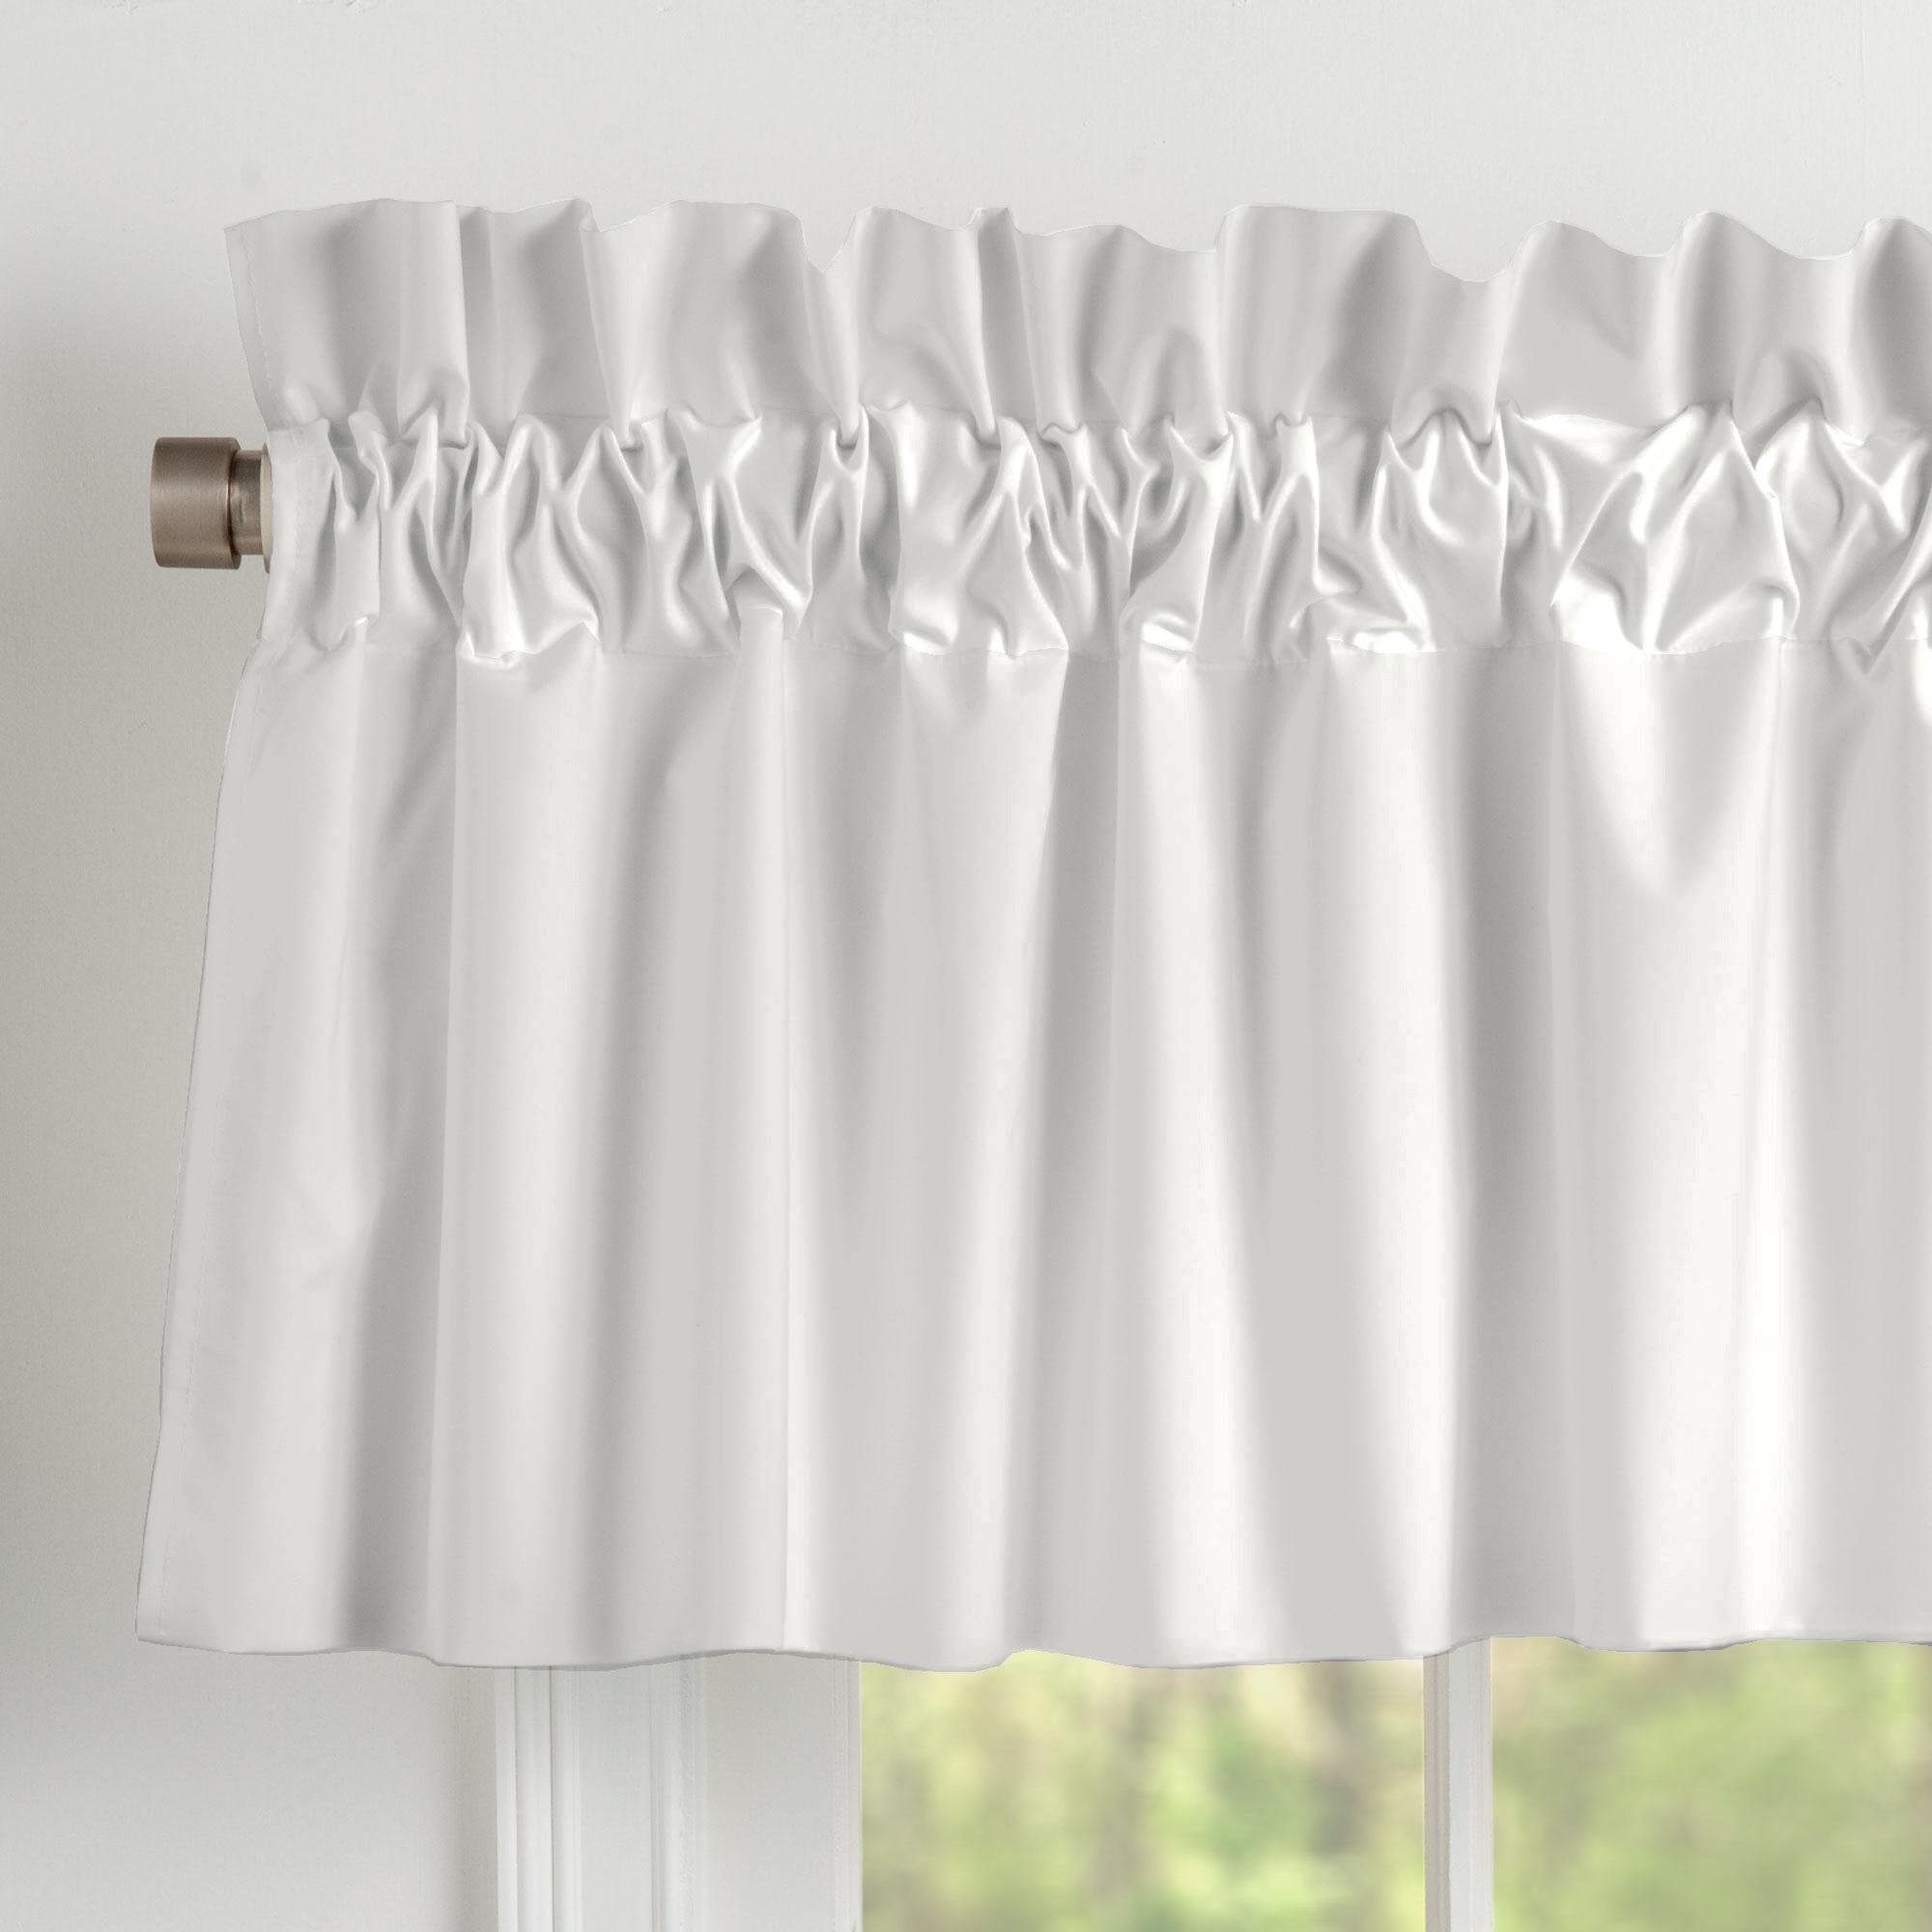 Carousel Designs Solid Silver Gray Window Valance Rod Pocket by Carousel Designs